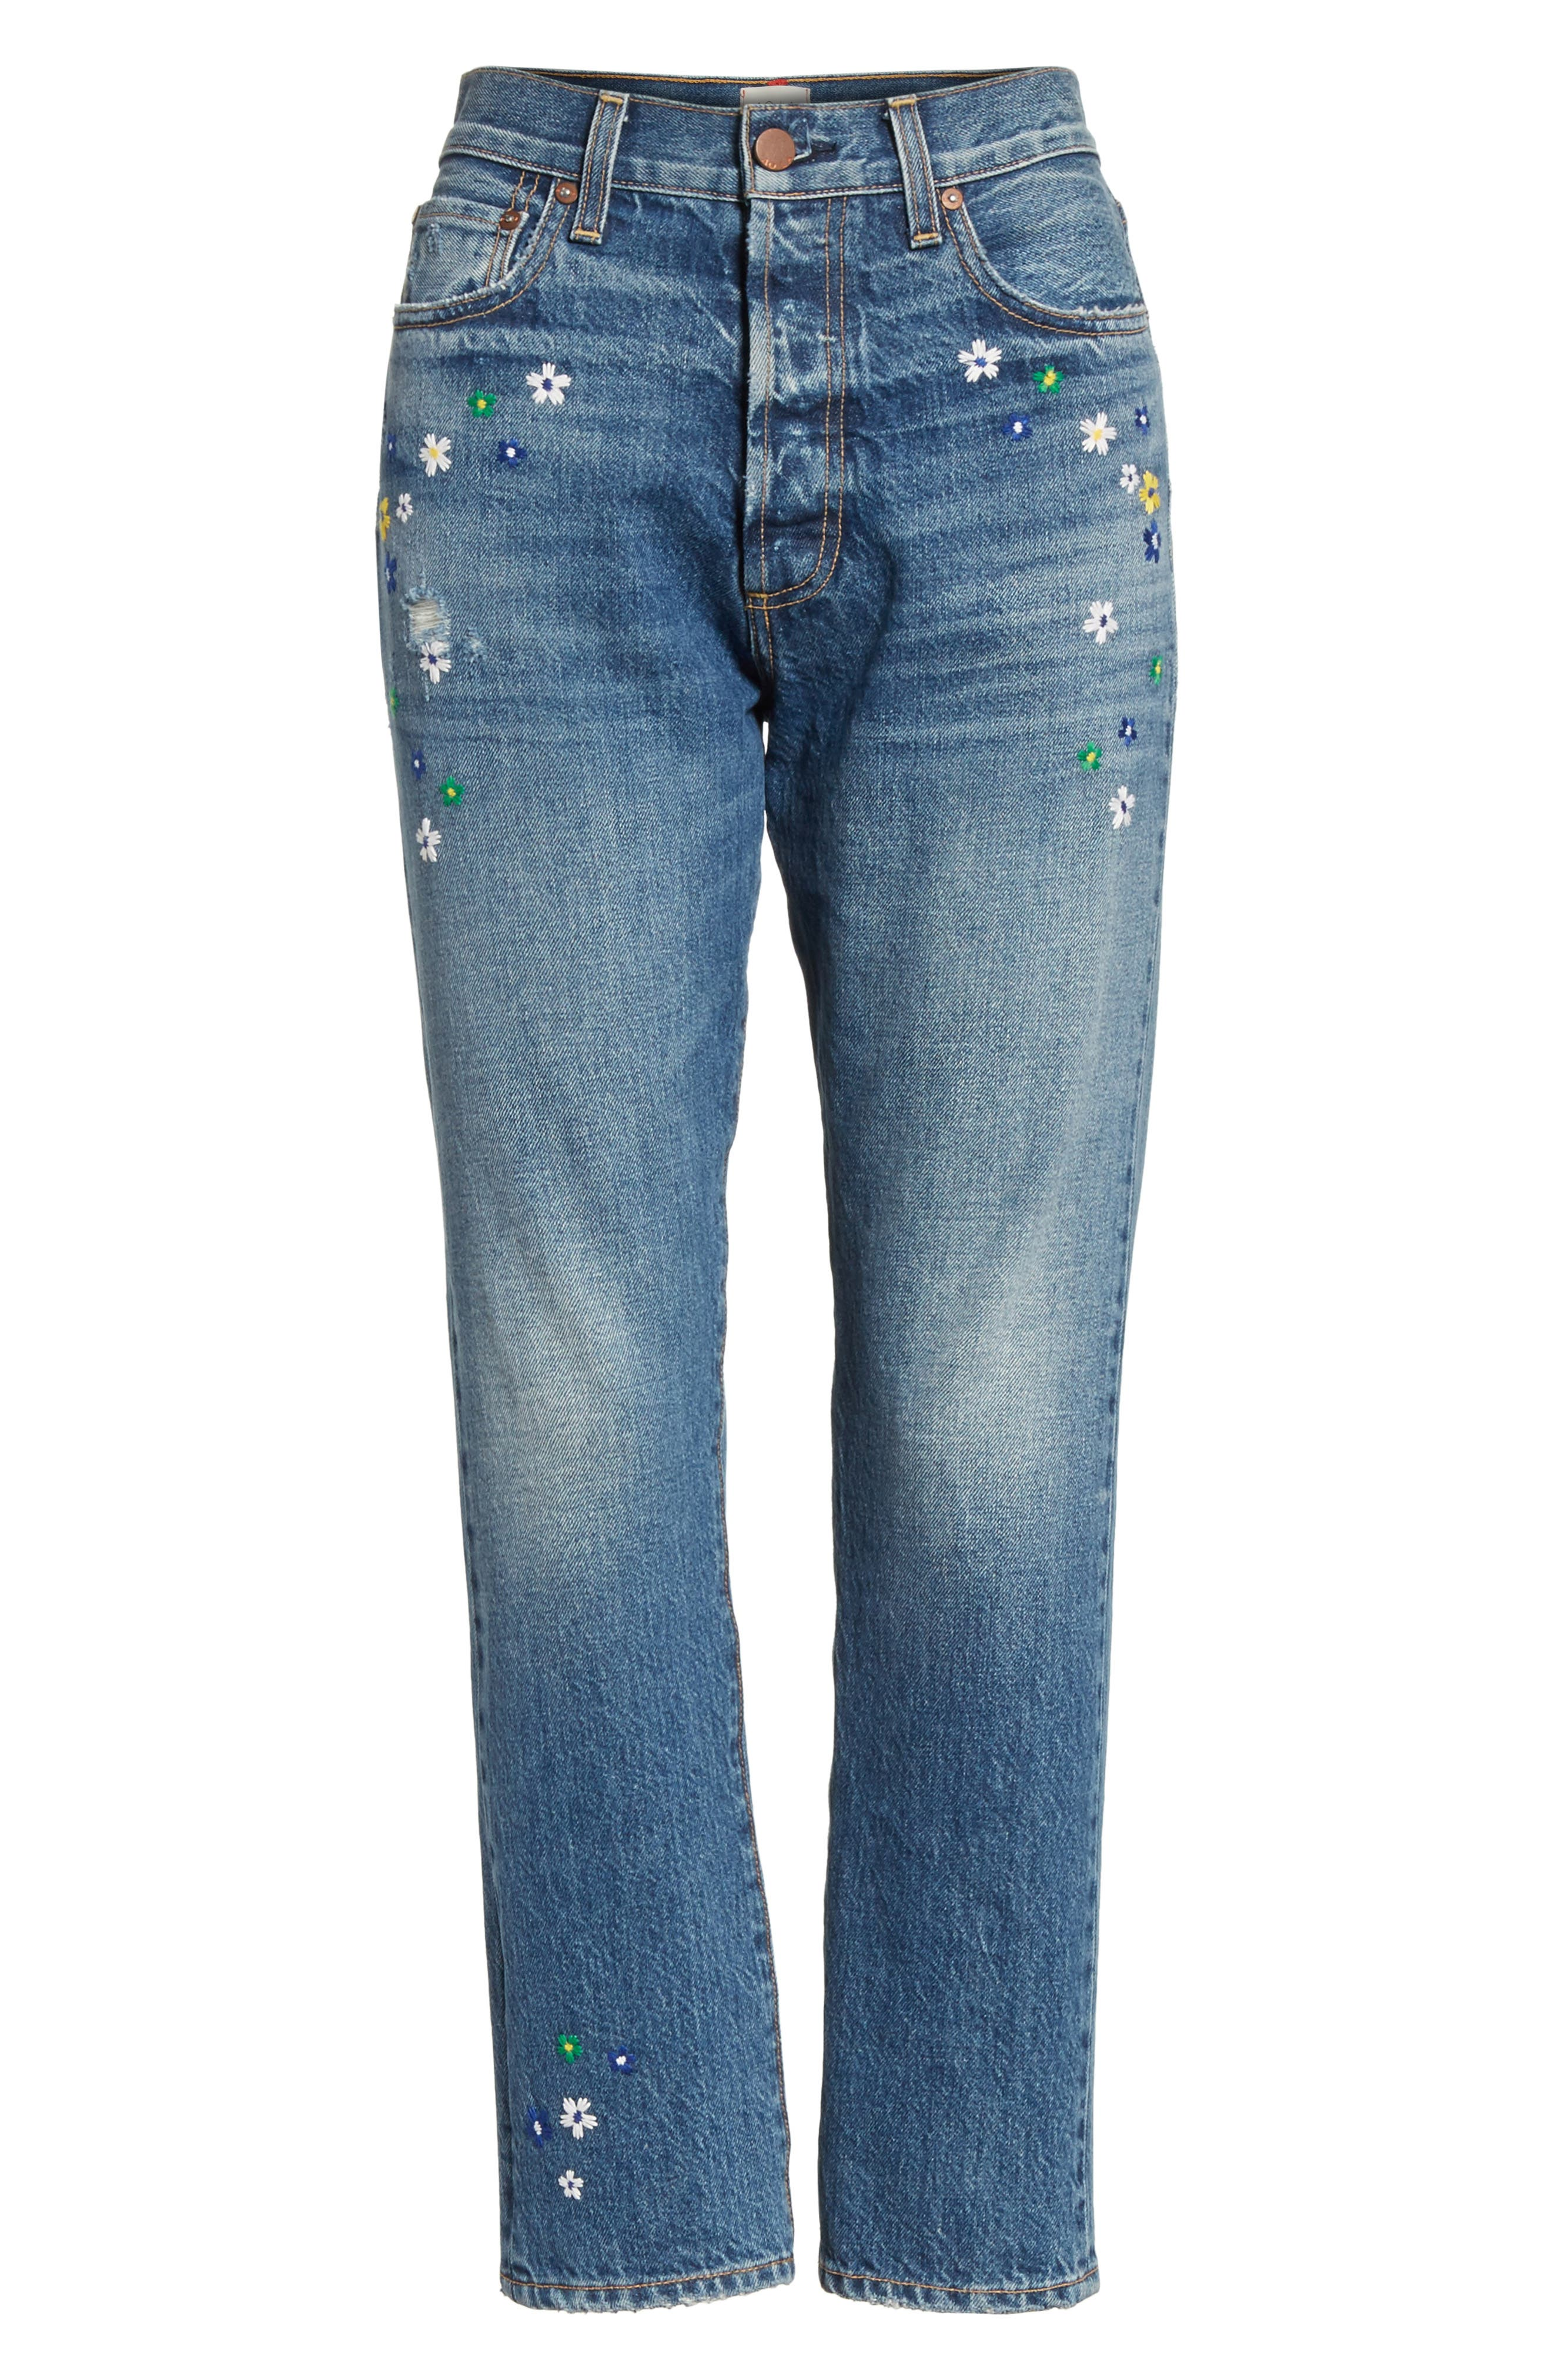 AO.LA Amazing Embroidered Slim Girlfriend Jeans,                             Alternate thumbnail 6, color,                             496